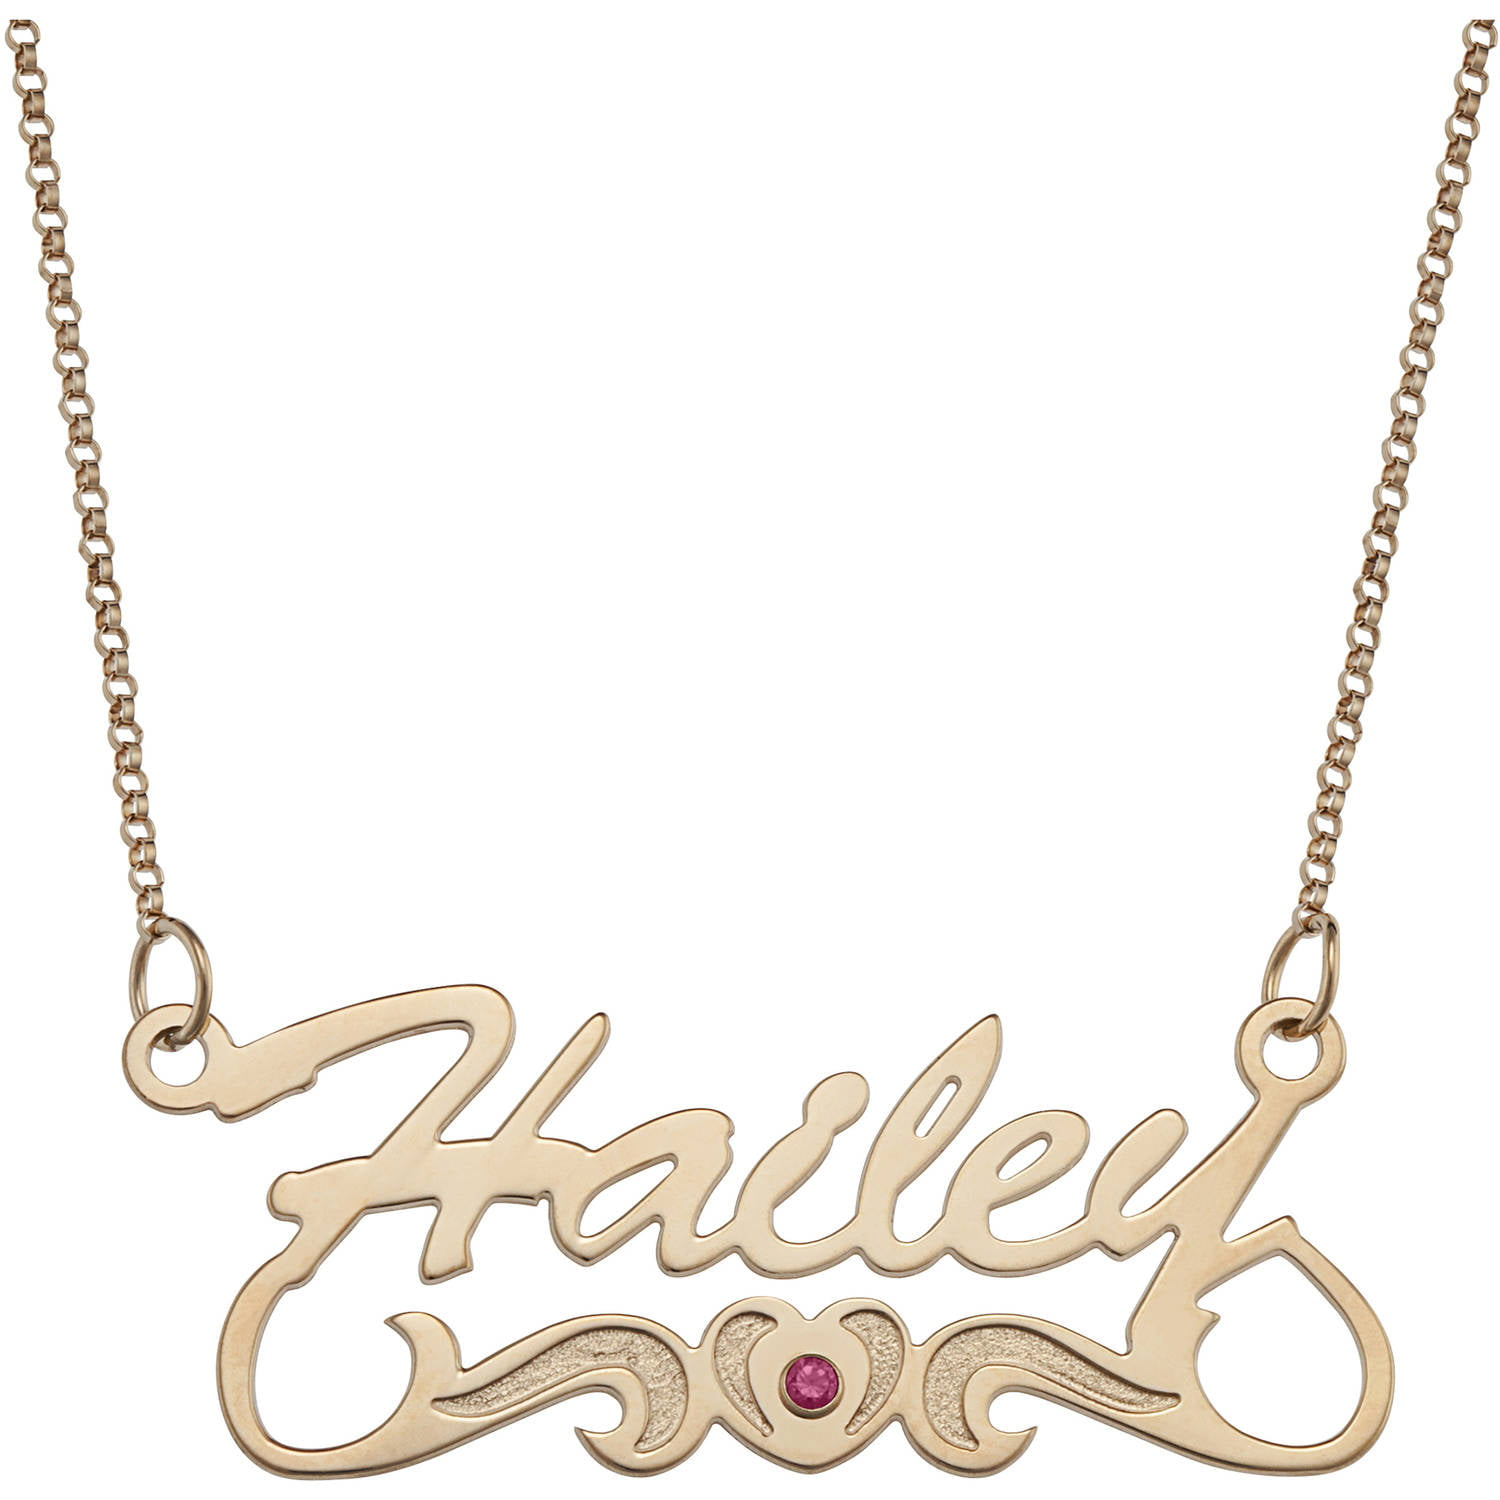 amy dp necklace com cursive jewelry dainty amazon curved aolo fashionable name